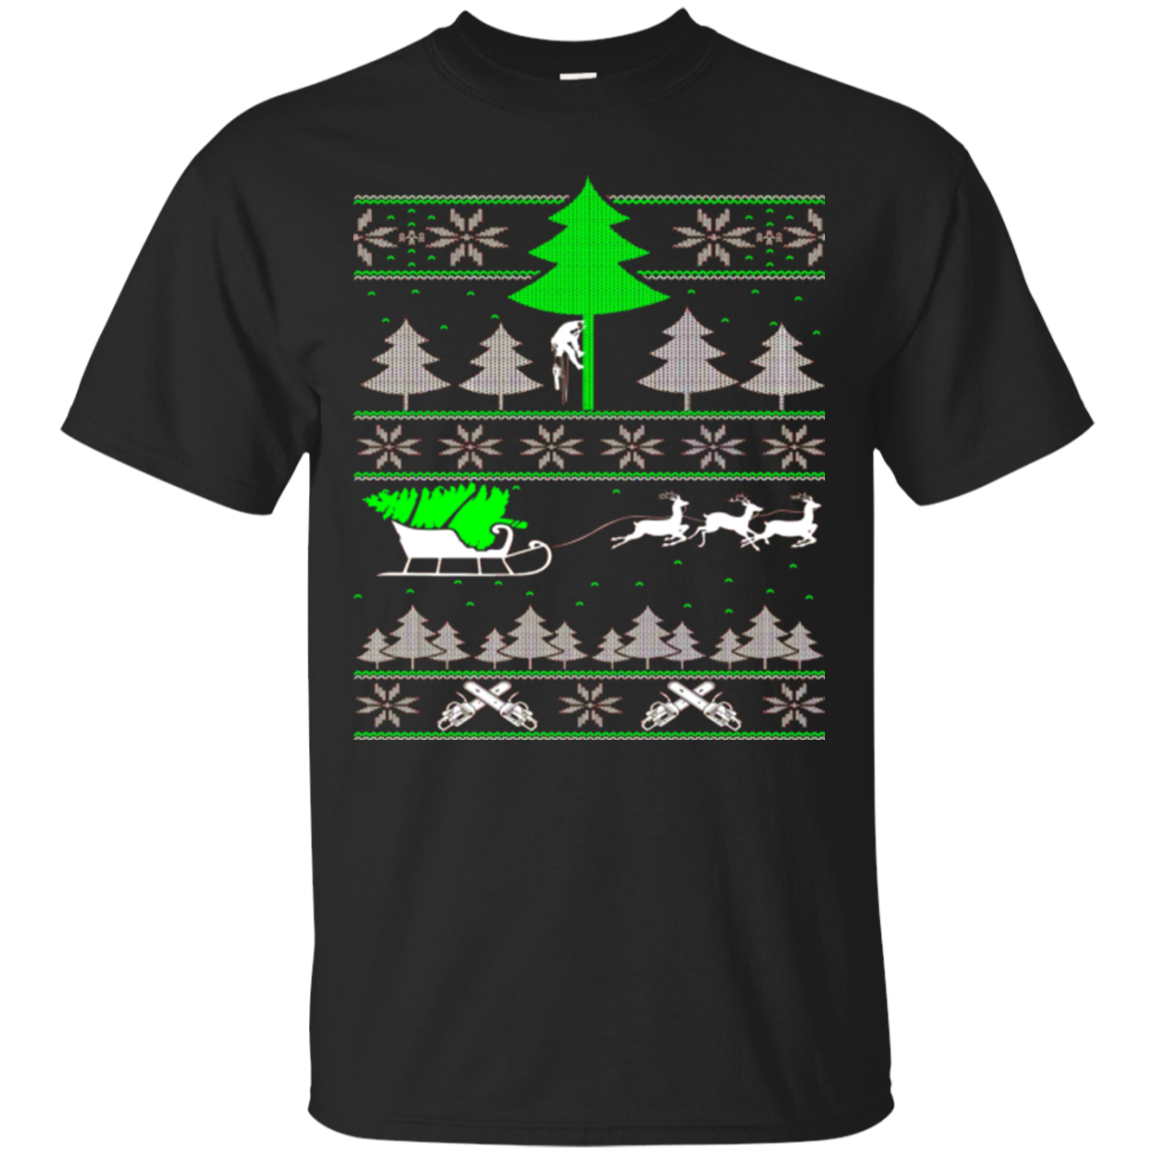 Christmas ugly sweater clipart png royalty free Arborist ugly Funny Christmas T-Shirts - Ugly Sweater – mdzsmart.com png royalty free